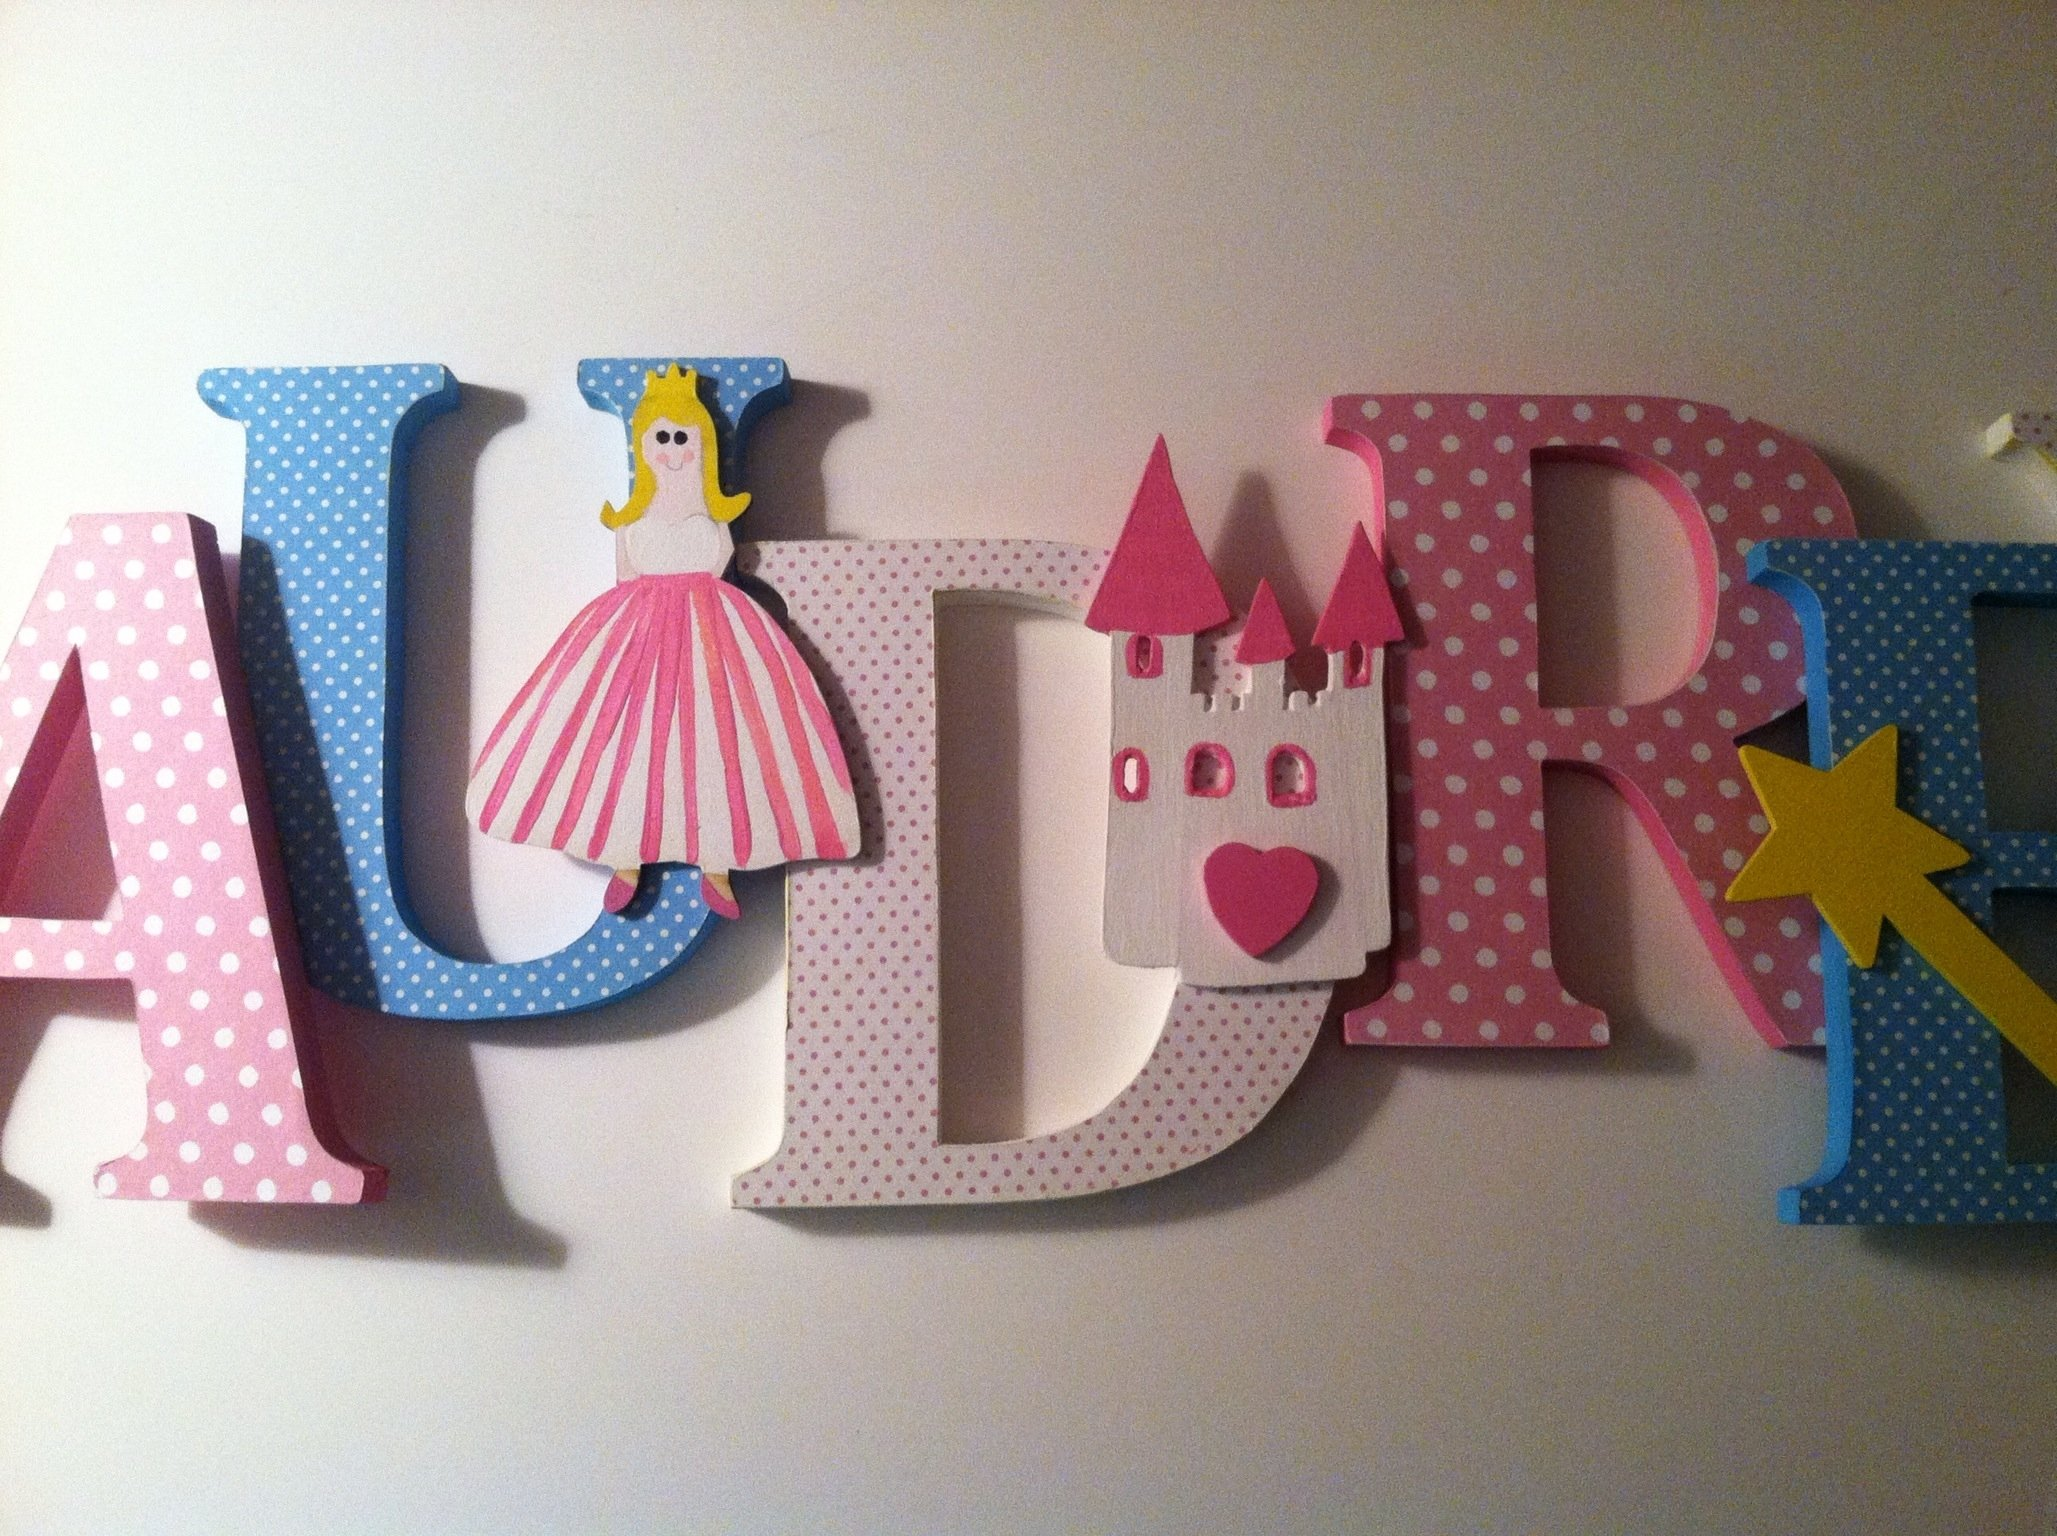 10 Fashionable Ideas For Decorating Wooden Letters 10 Fashionable Ideas For Decorating Wooden Letters wood letter wall decor  elegant princess themed wooden letters